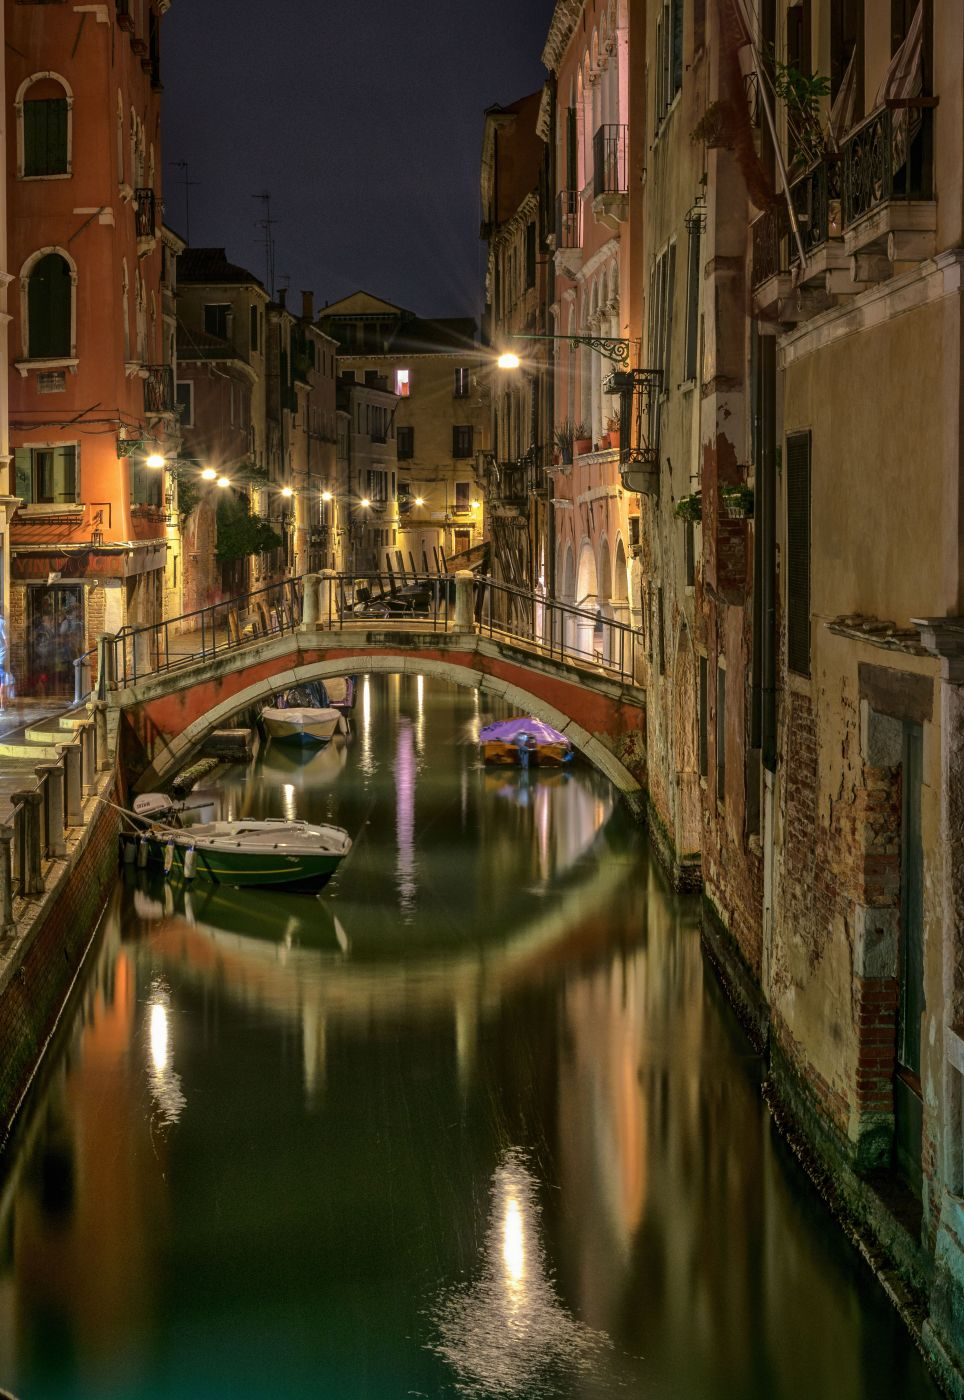 Bridge at Venice, Italy